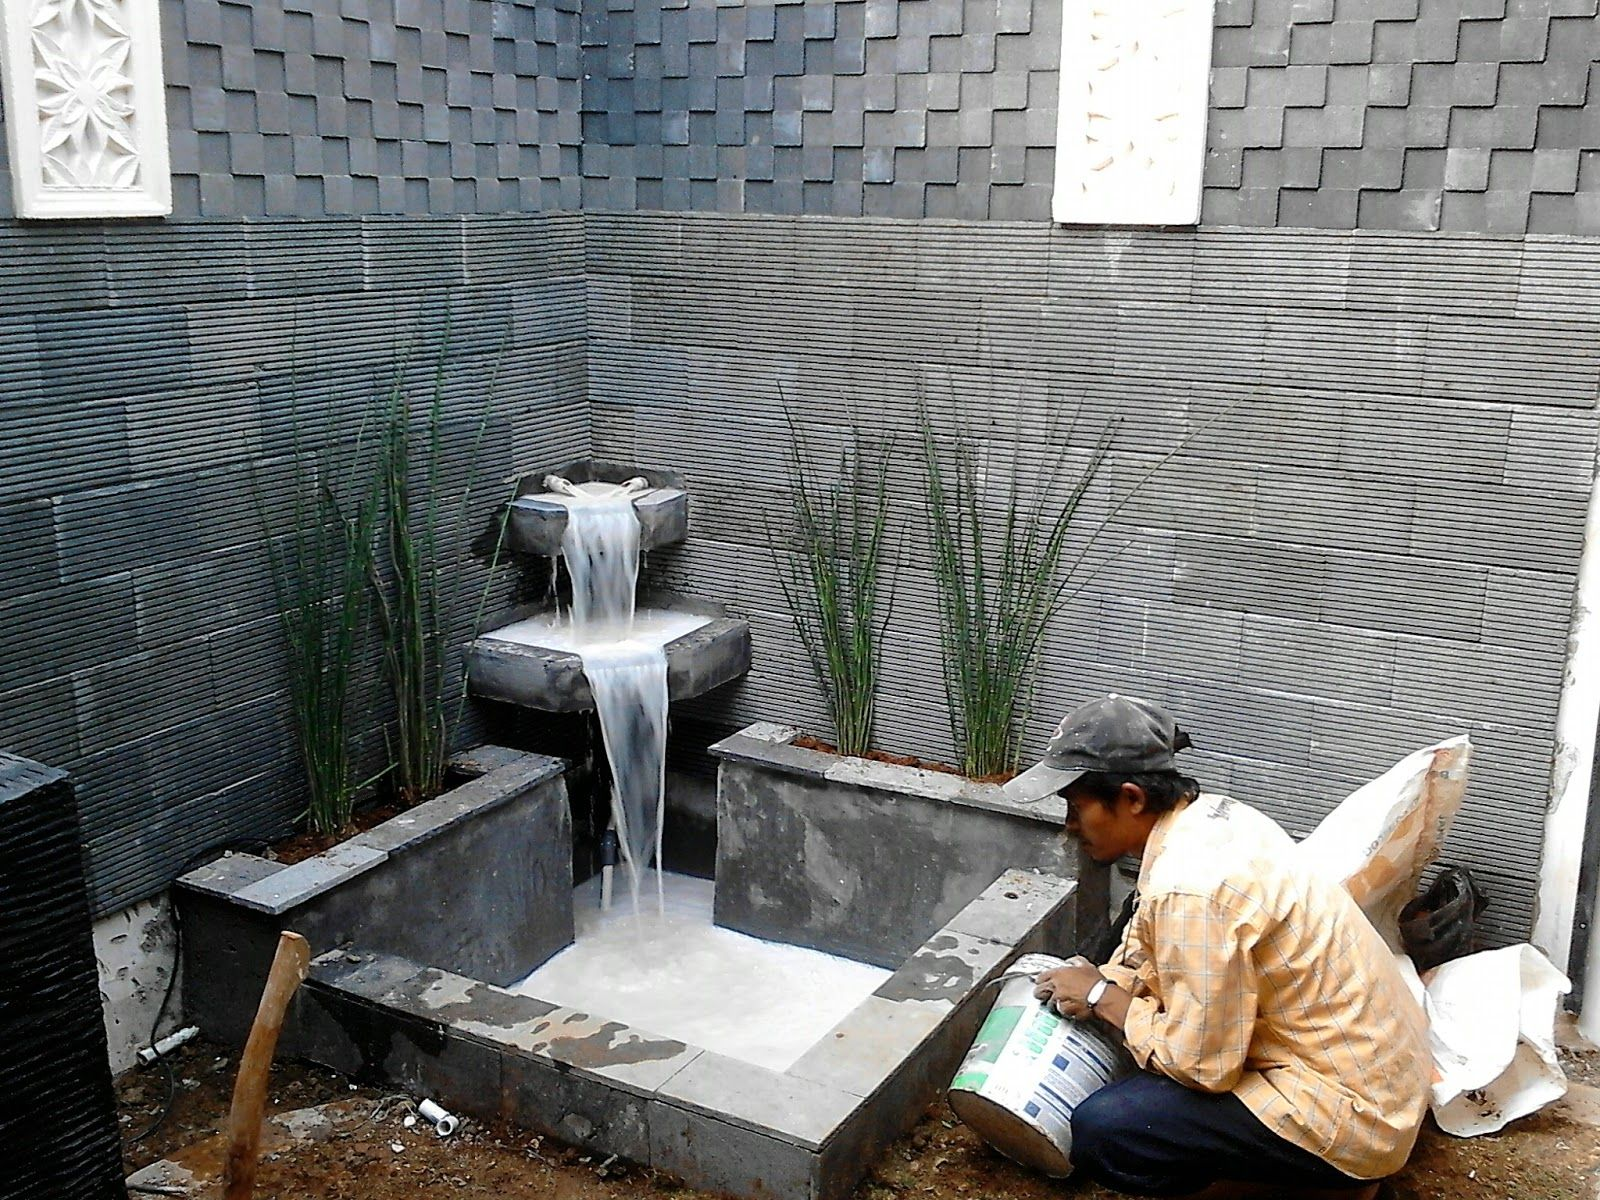 Backyard Pond Ideas likewise Japanse Tuin Aanleggen Een  binatie Van Symbolische Elementen additionally Aboutus as well Garden Waterfall Design Pictures further Water Garden Koi Pond. on modern koi ponds and water gardens